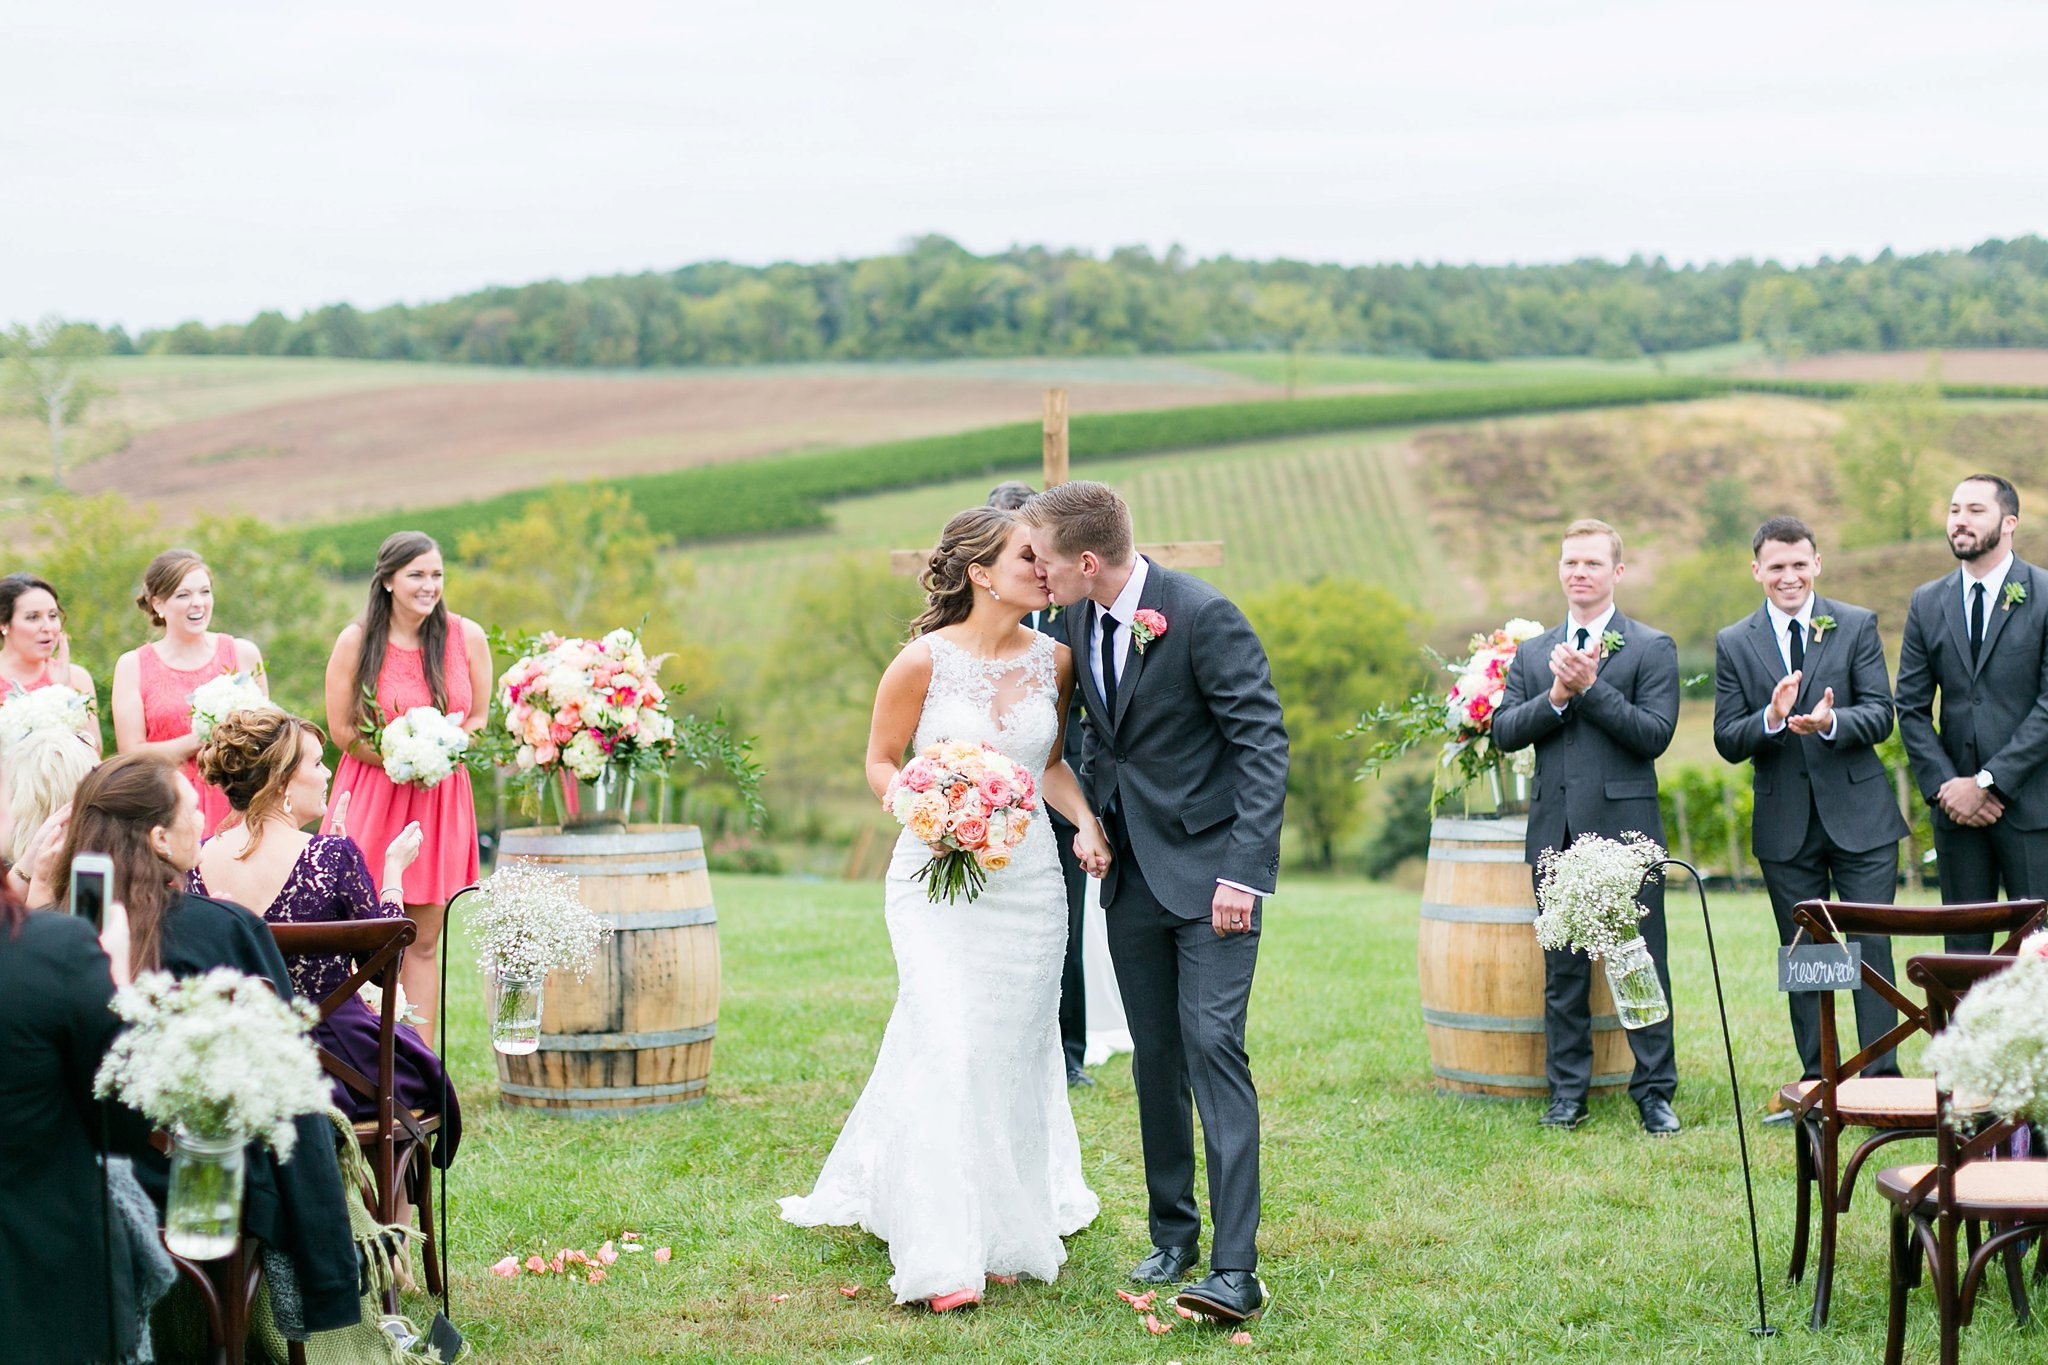 Stone Tower Winery Wedding Photos Virginia Wedding Photographer Megan Kelsey Photography Sam & Angela-167.jpg